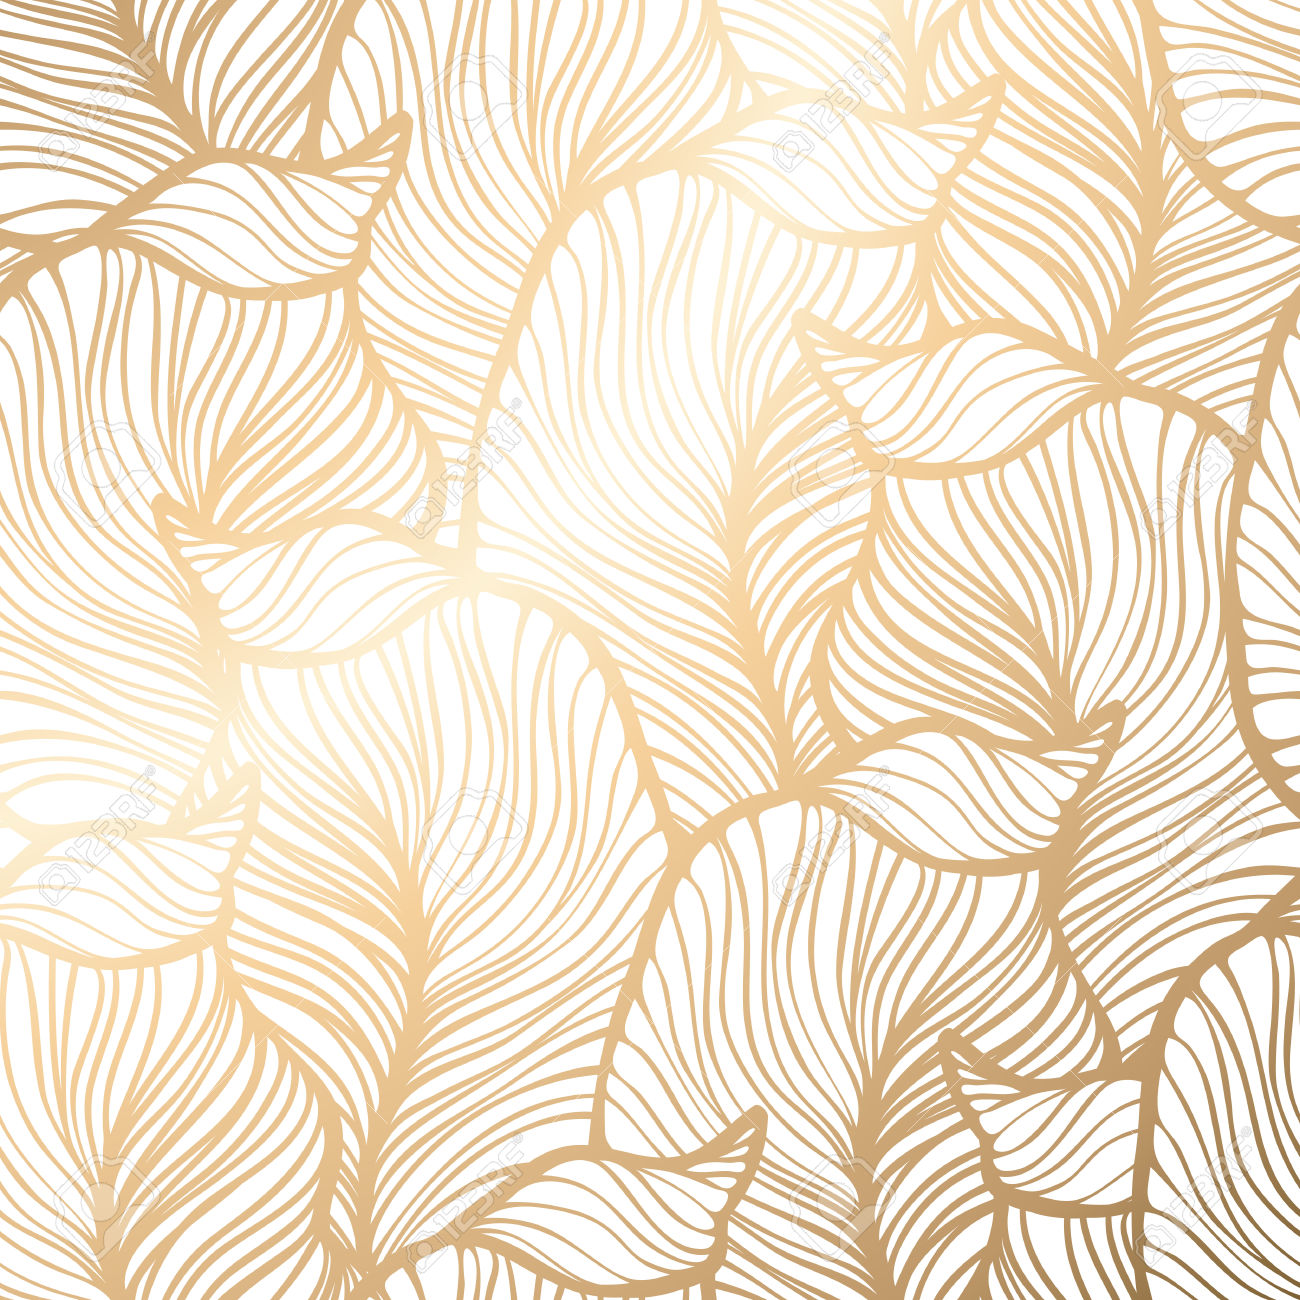 How To Get Live Wallpapers On Iphone 5 Download Gold Leaf Wallpaper Designs Gallery